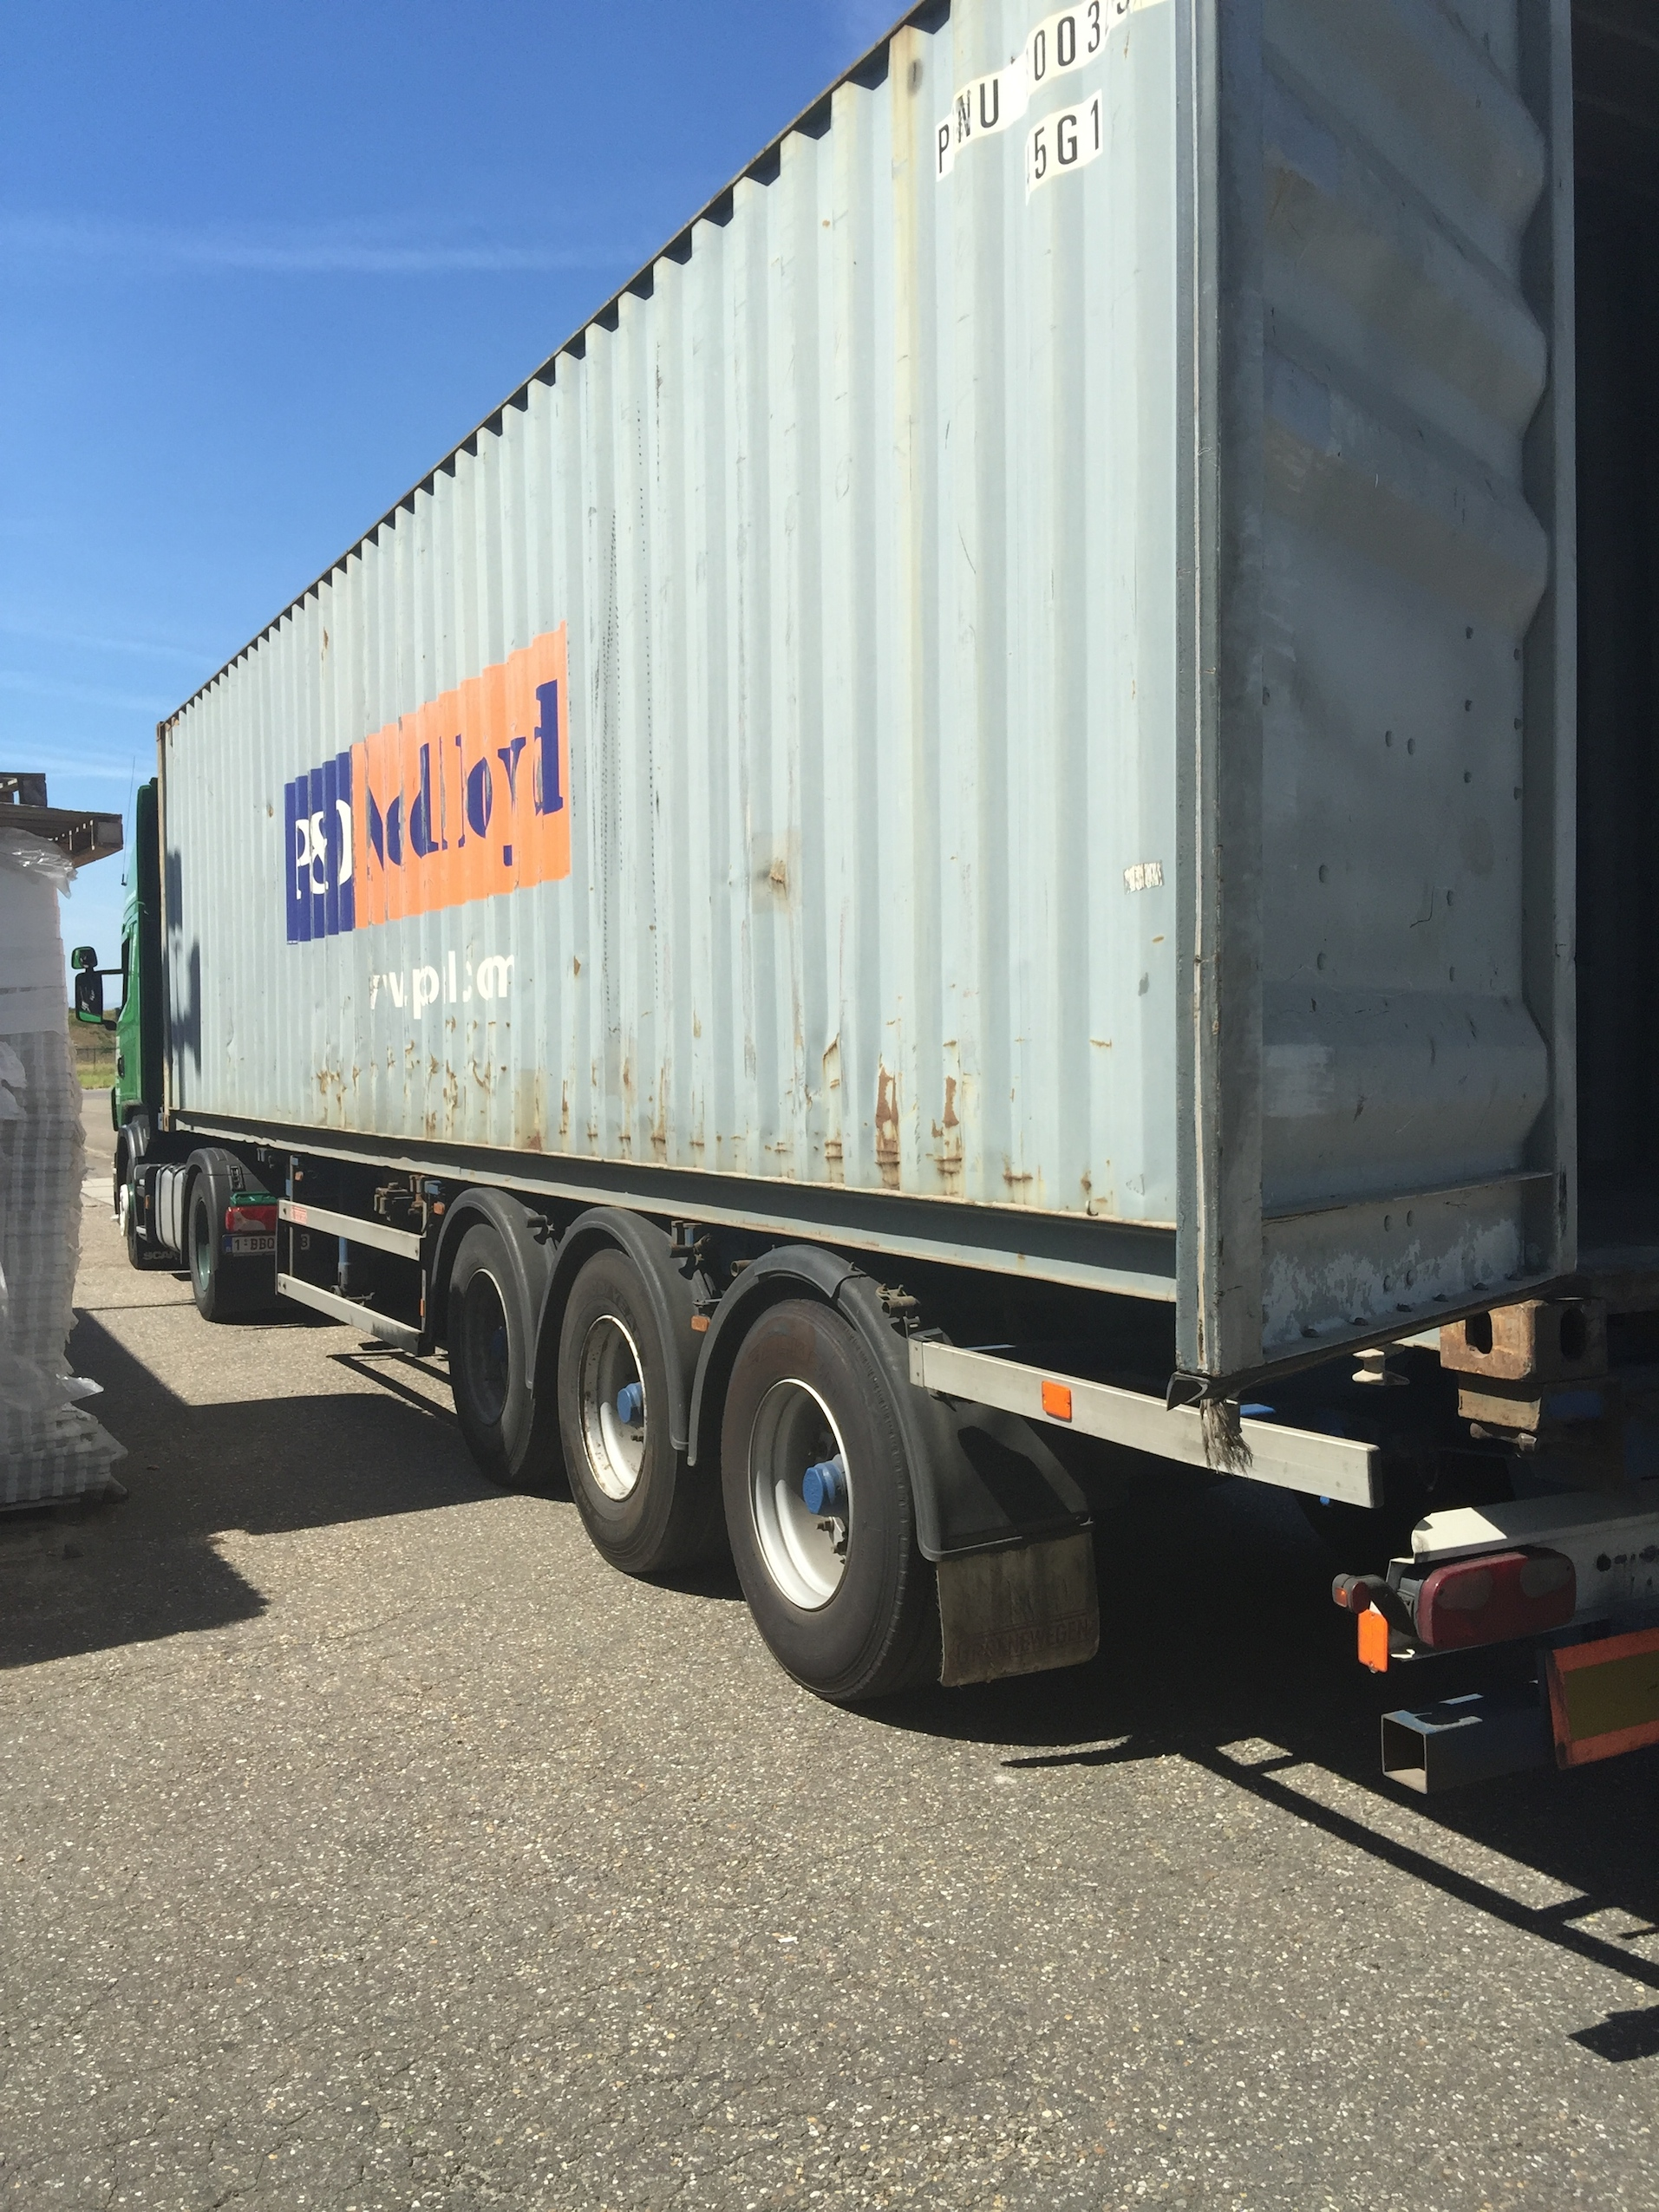 Loading and Shipment of Electoral Material | Ghent, Belgium | 6 August 2015